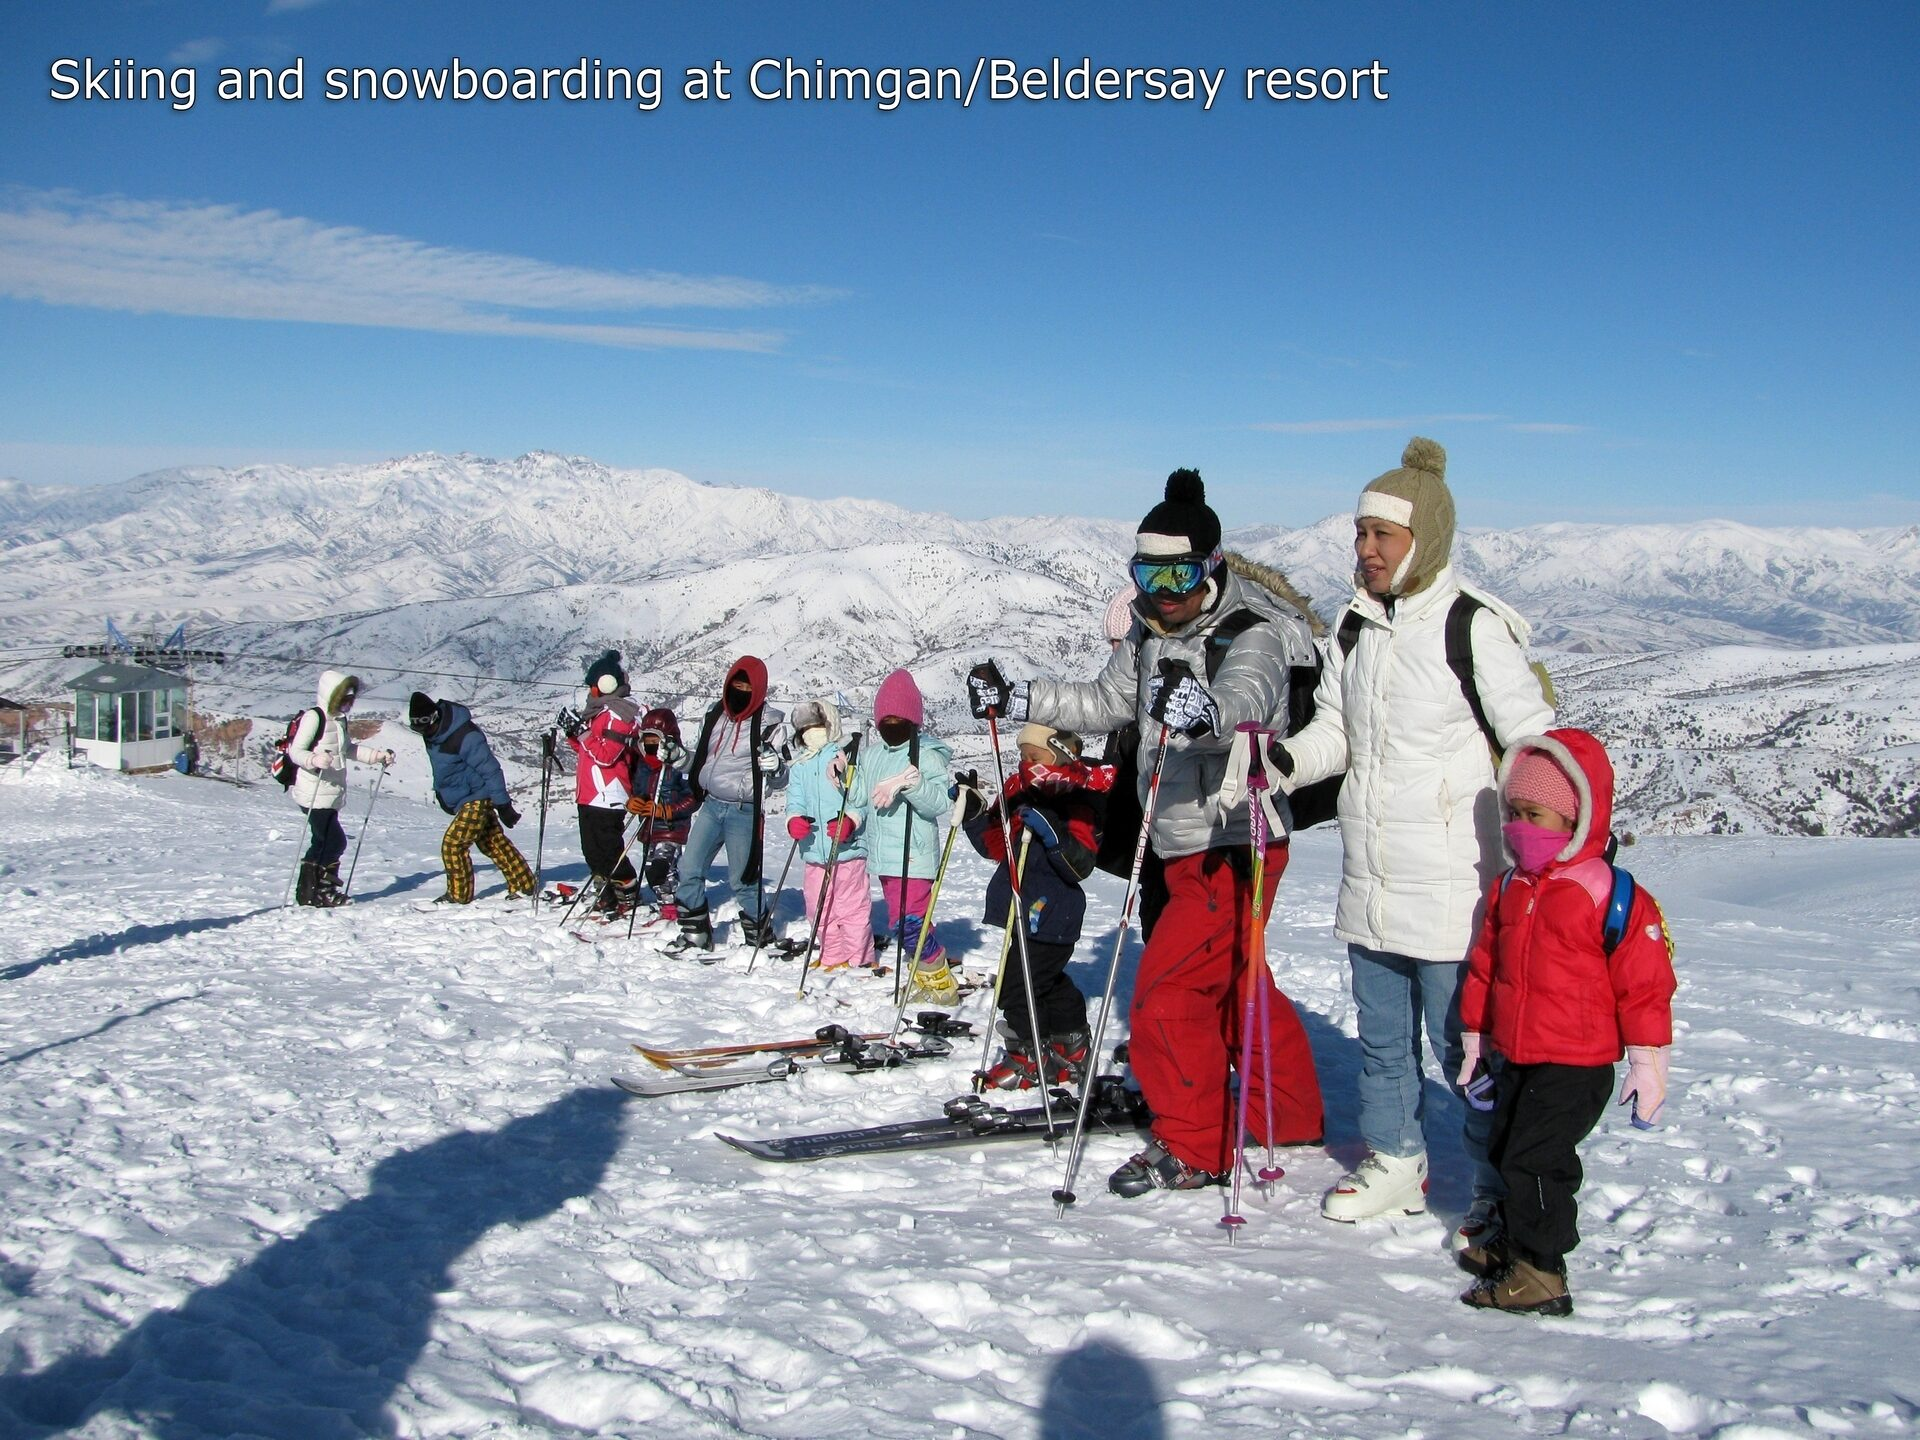 Uzbekistan skiing and snowboarding at Chimgan and Beldersay ski resorts